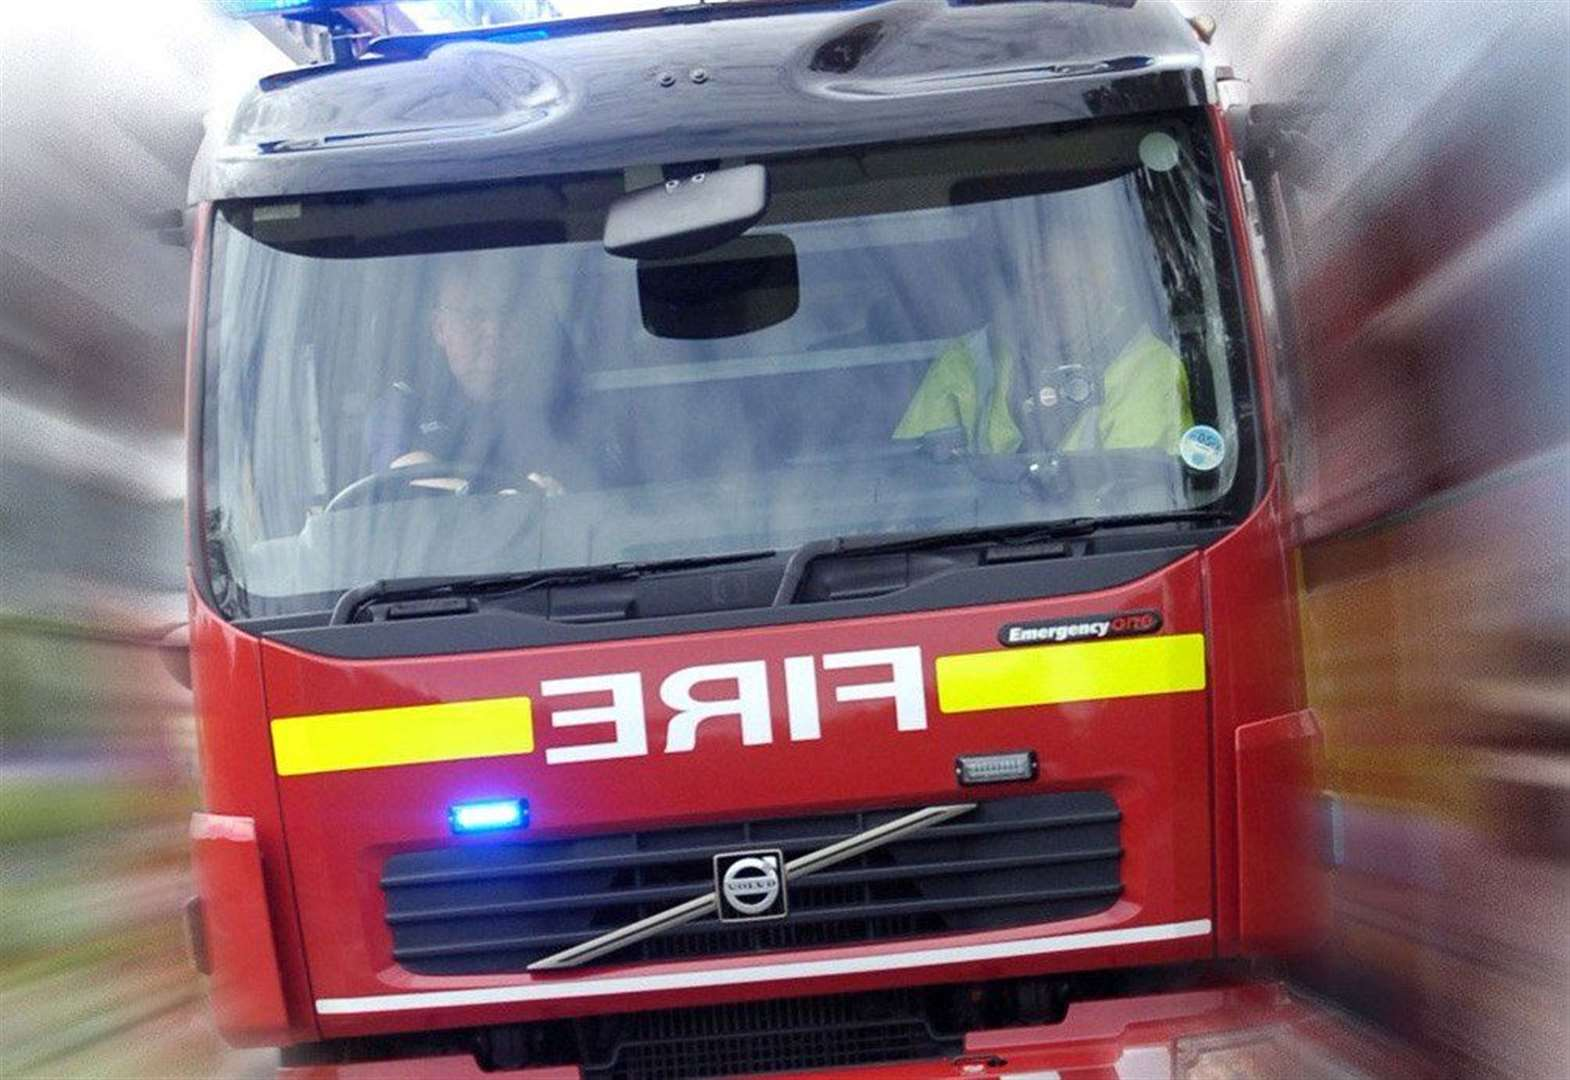 Firefighters called to tumble dryer fire